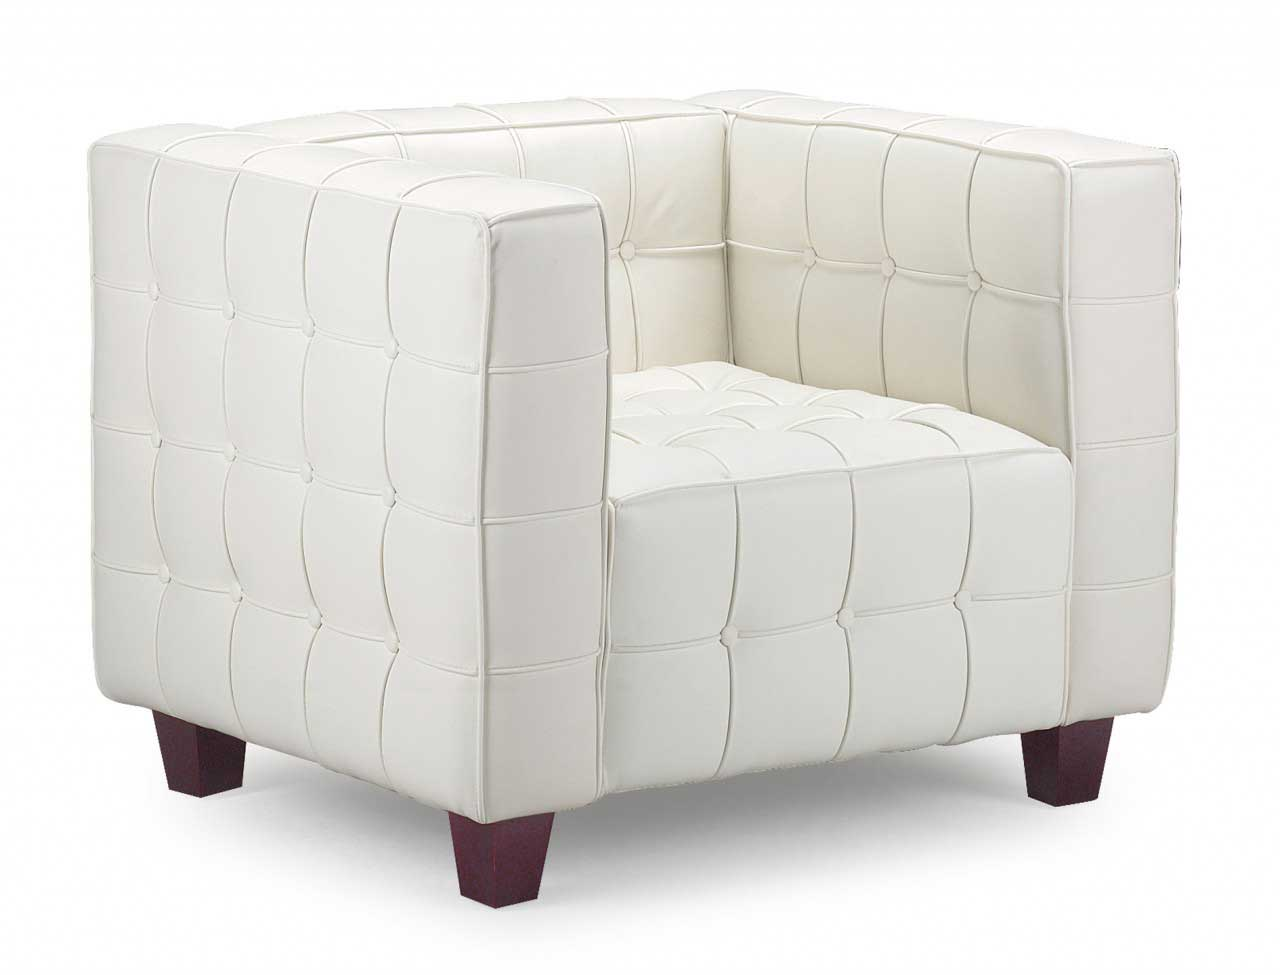 Italian modern White leather chair with arm